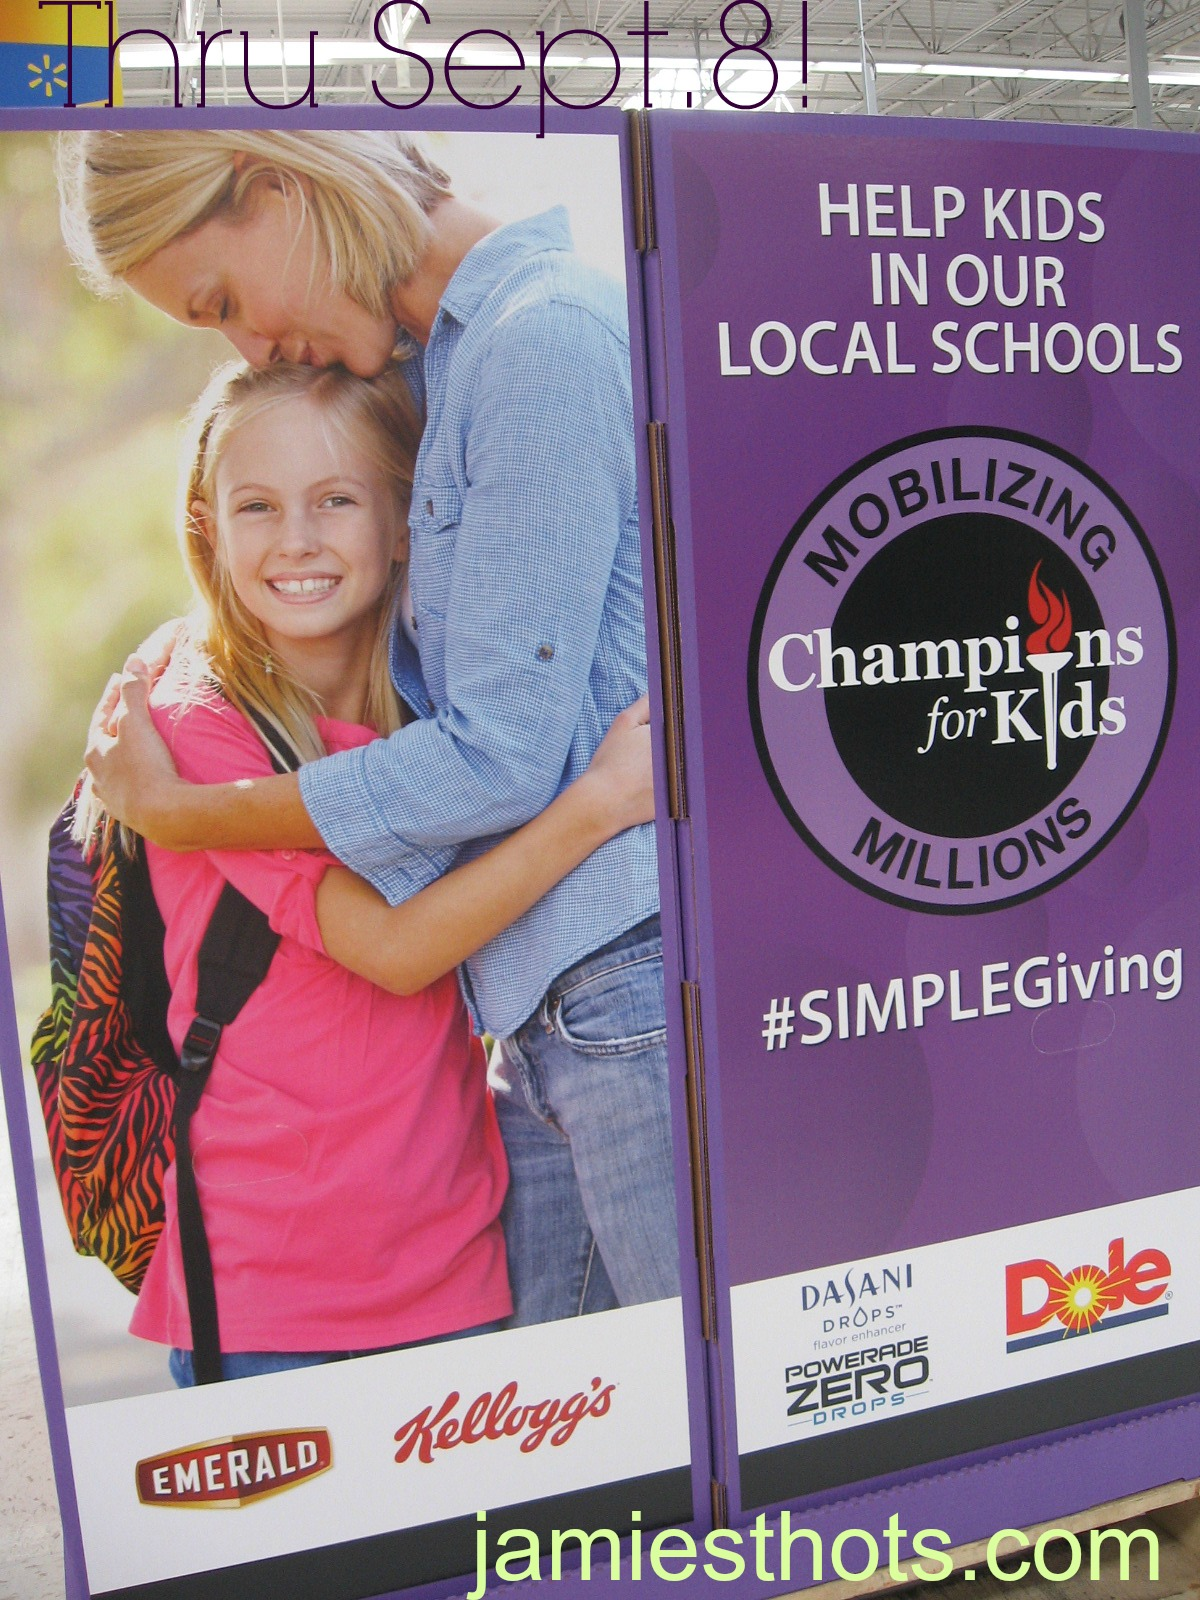 SIMPLE Giving creates Champions for Kids in local schools